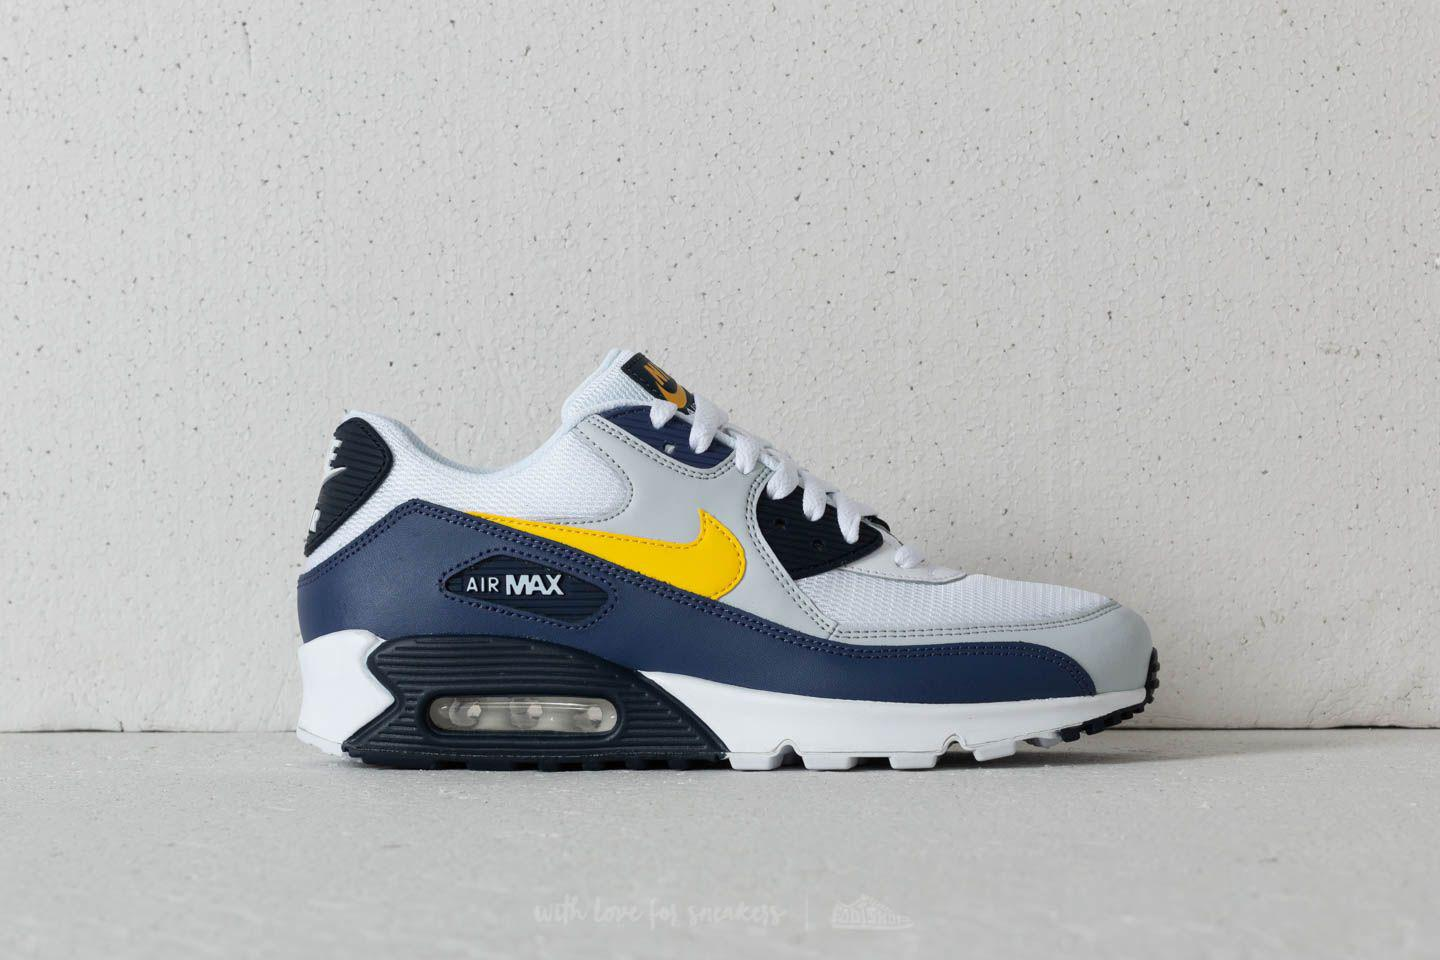 Lyst - Nike Air Max 90 Essential White  Tour Yellow-blue Recall in ... 4193f247d